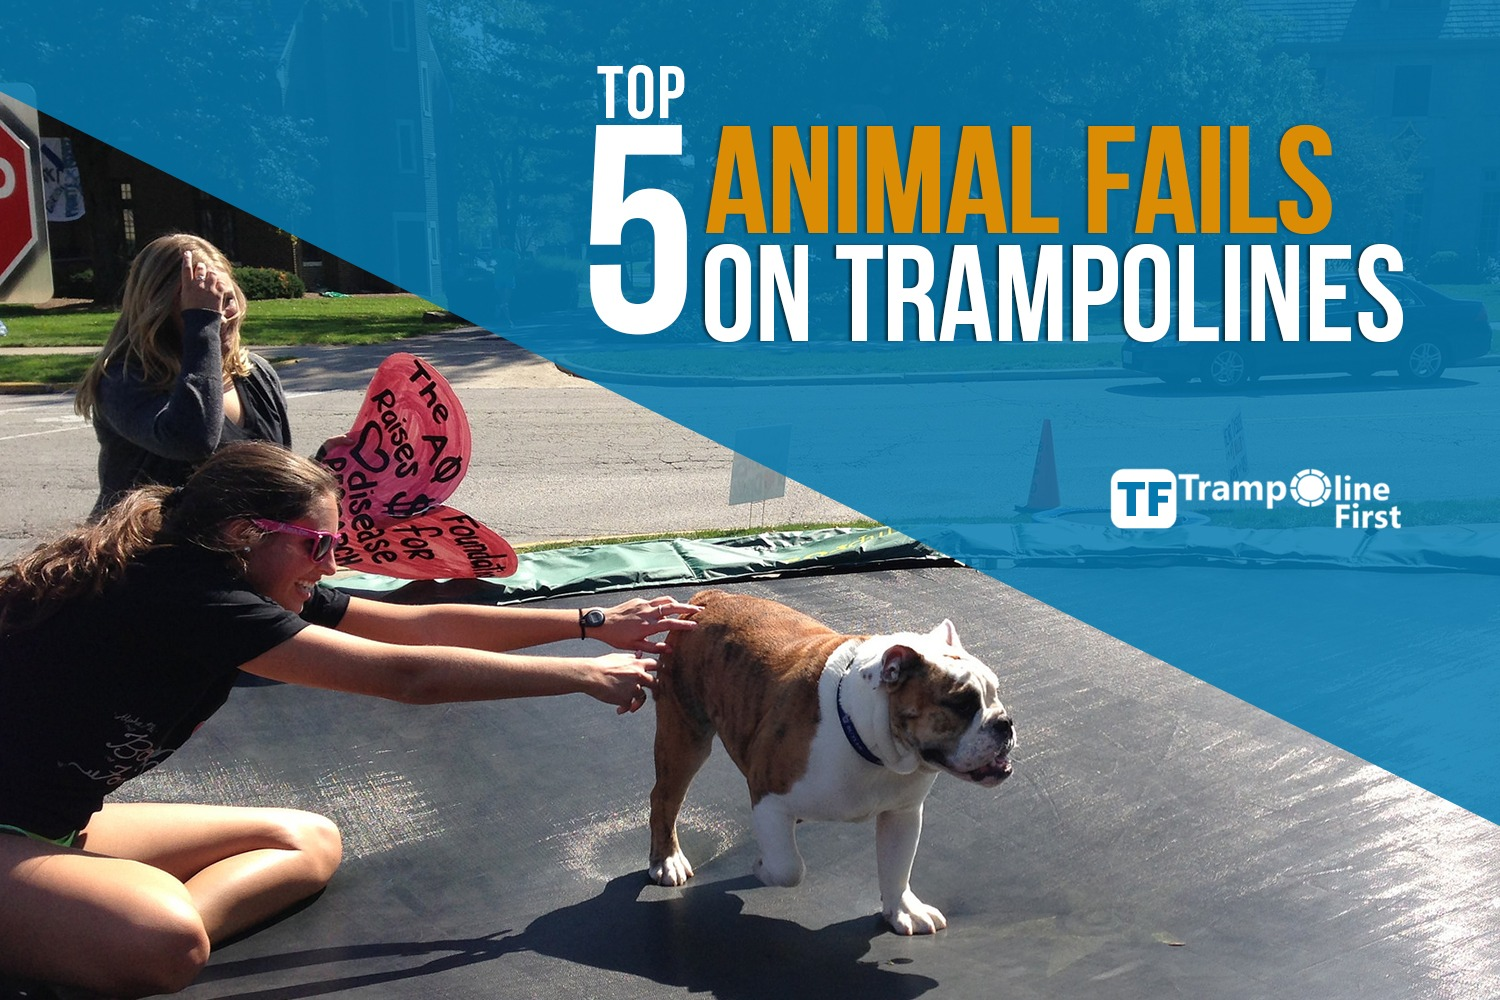 Top 5 Animal Fails on Trampolines